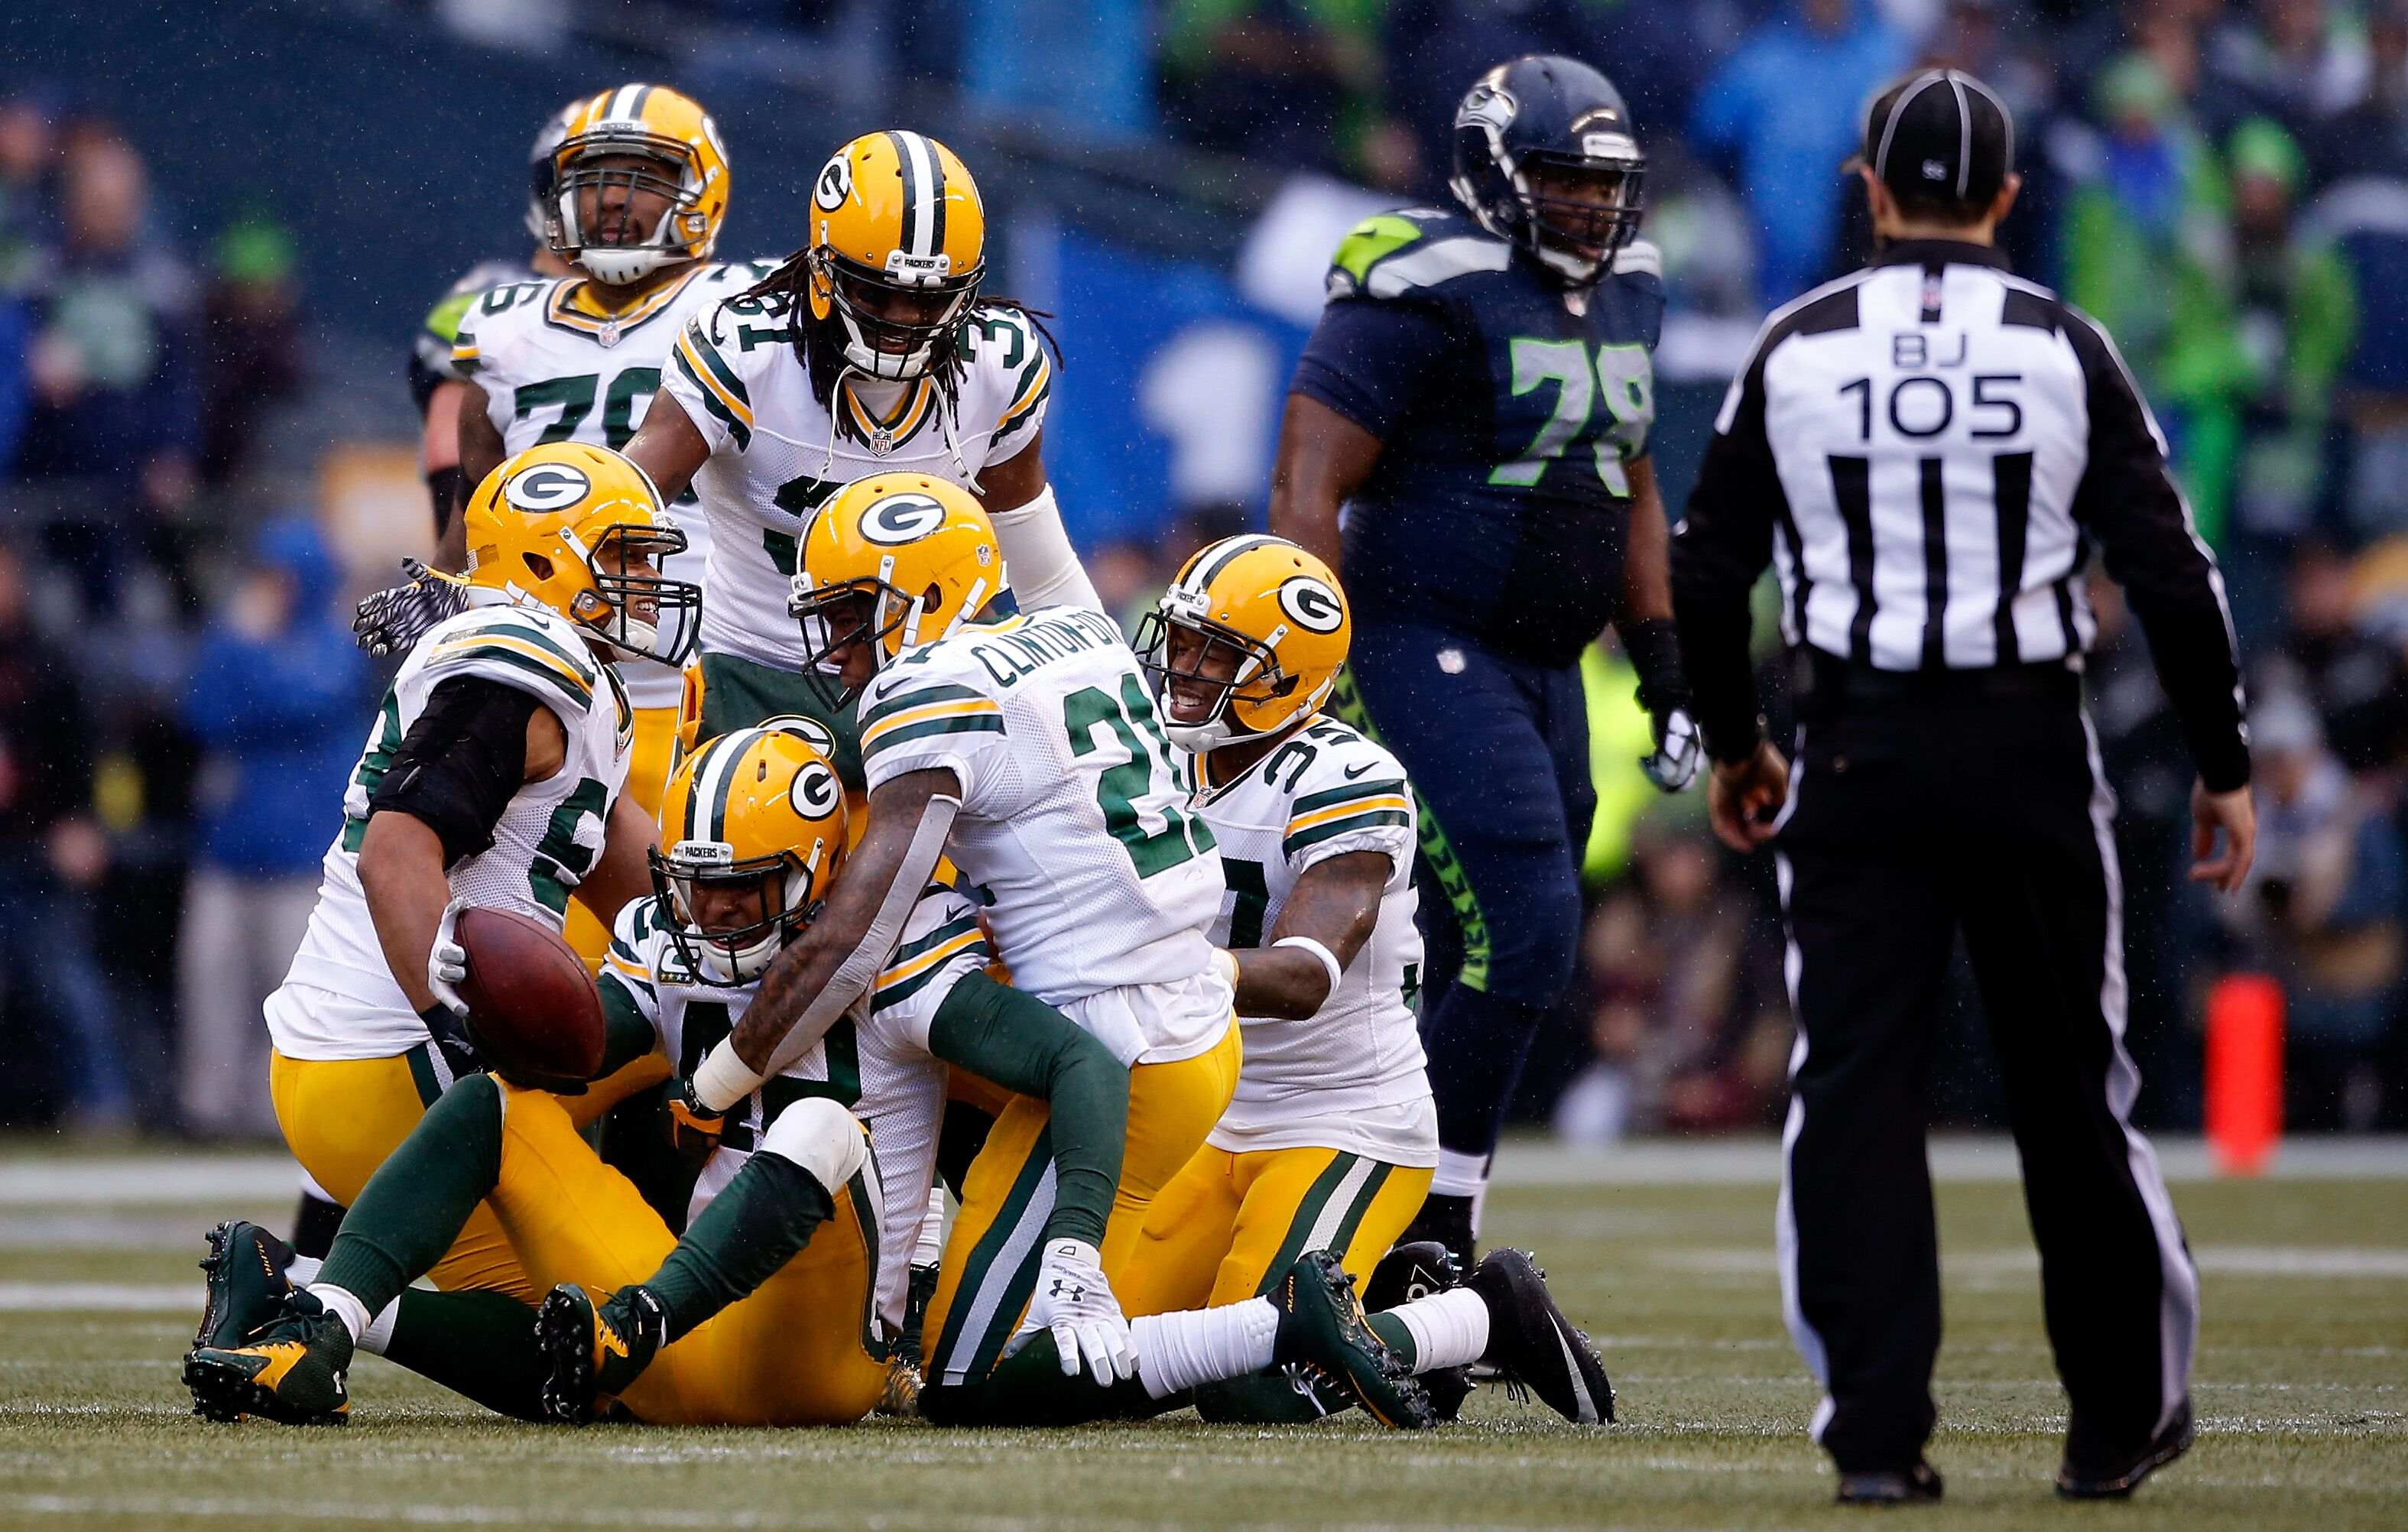 461738206-nfc-championship-green-bay-packers-v-seattle-seahawks.jpg